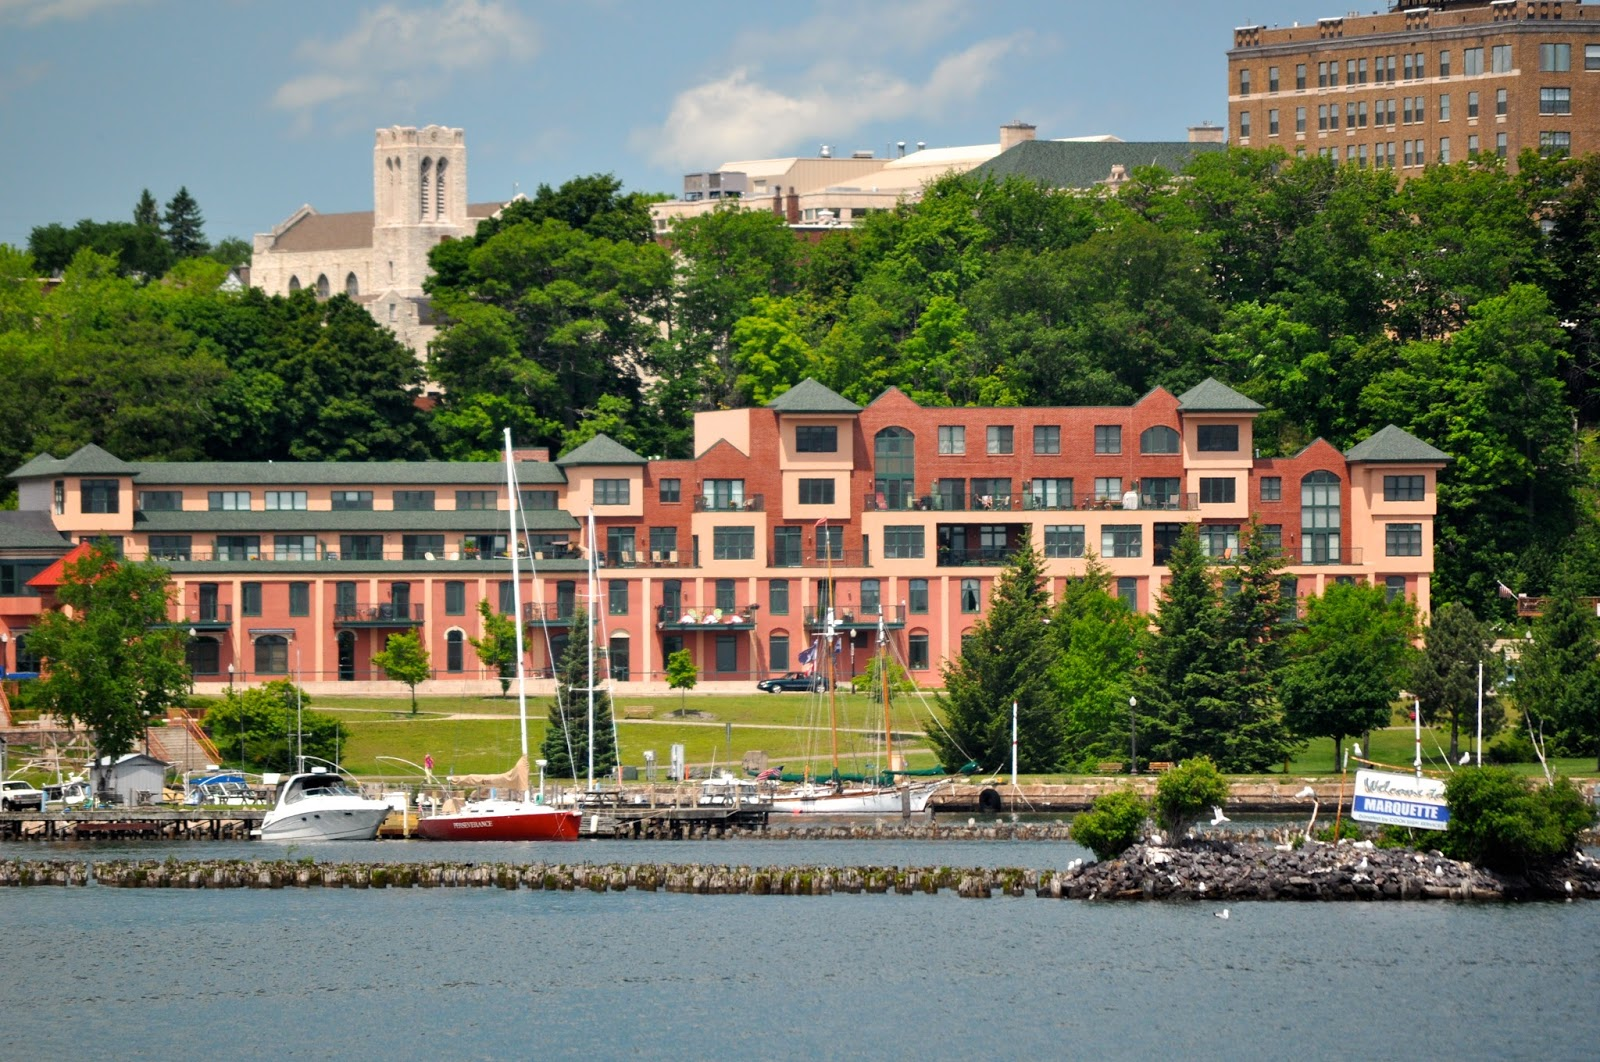 ... we will meet up with them here in marquette marquette light est 1853